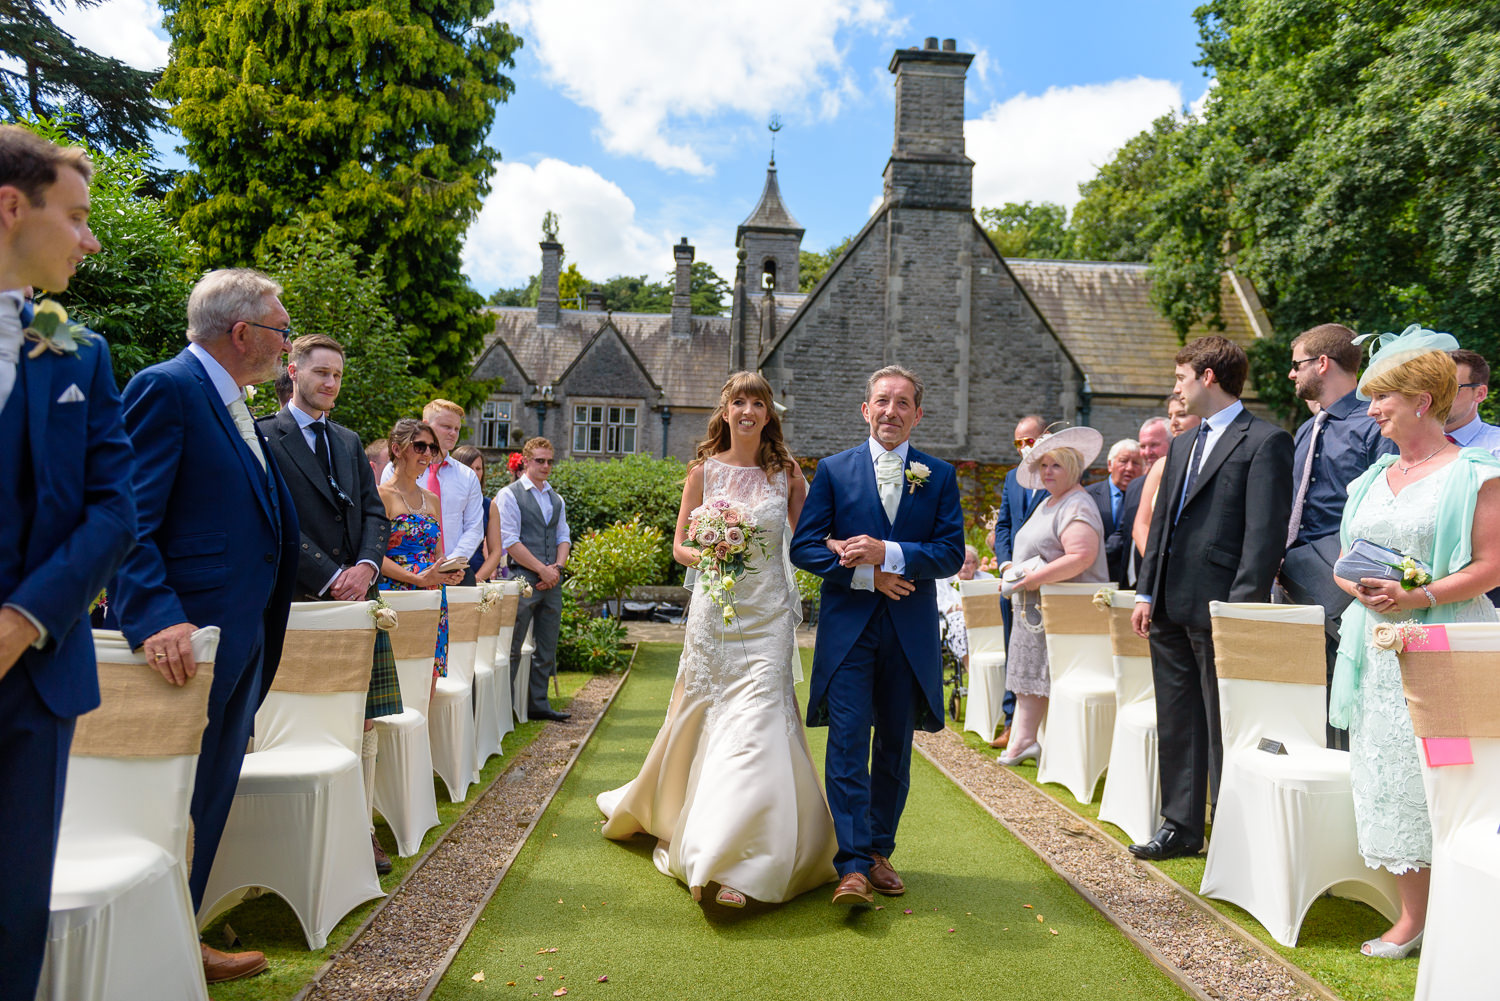 Gold Wedding at Callow Hall, Derbyshire